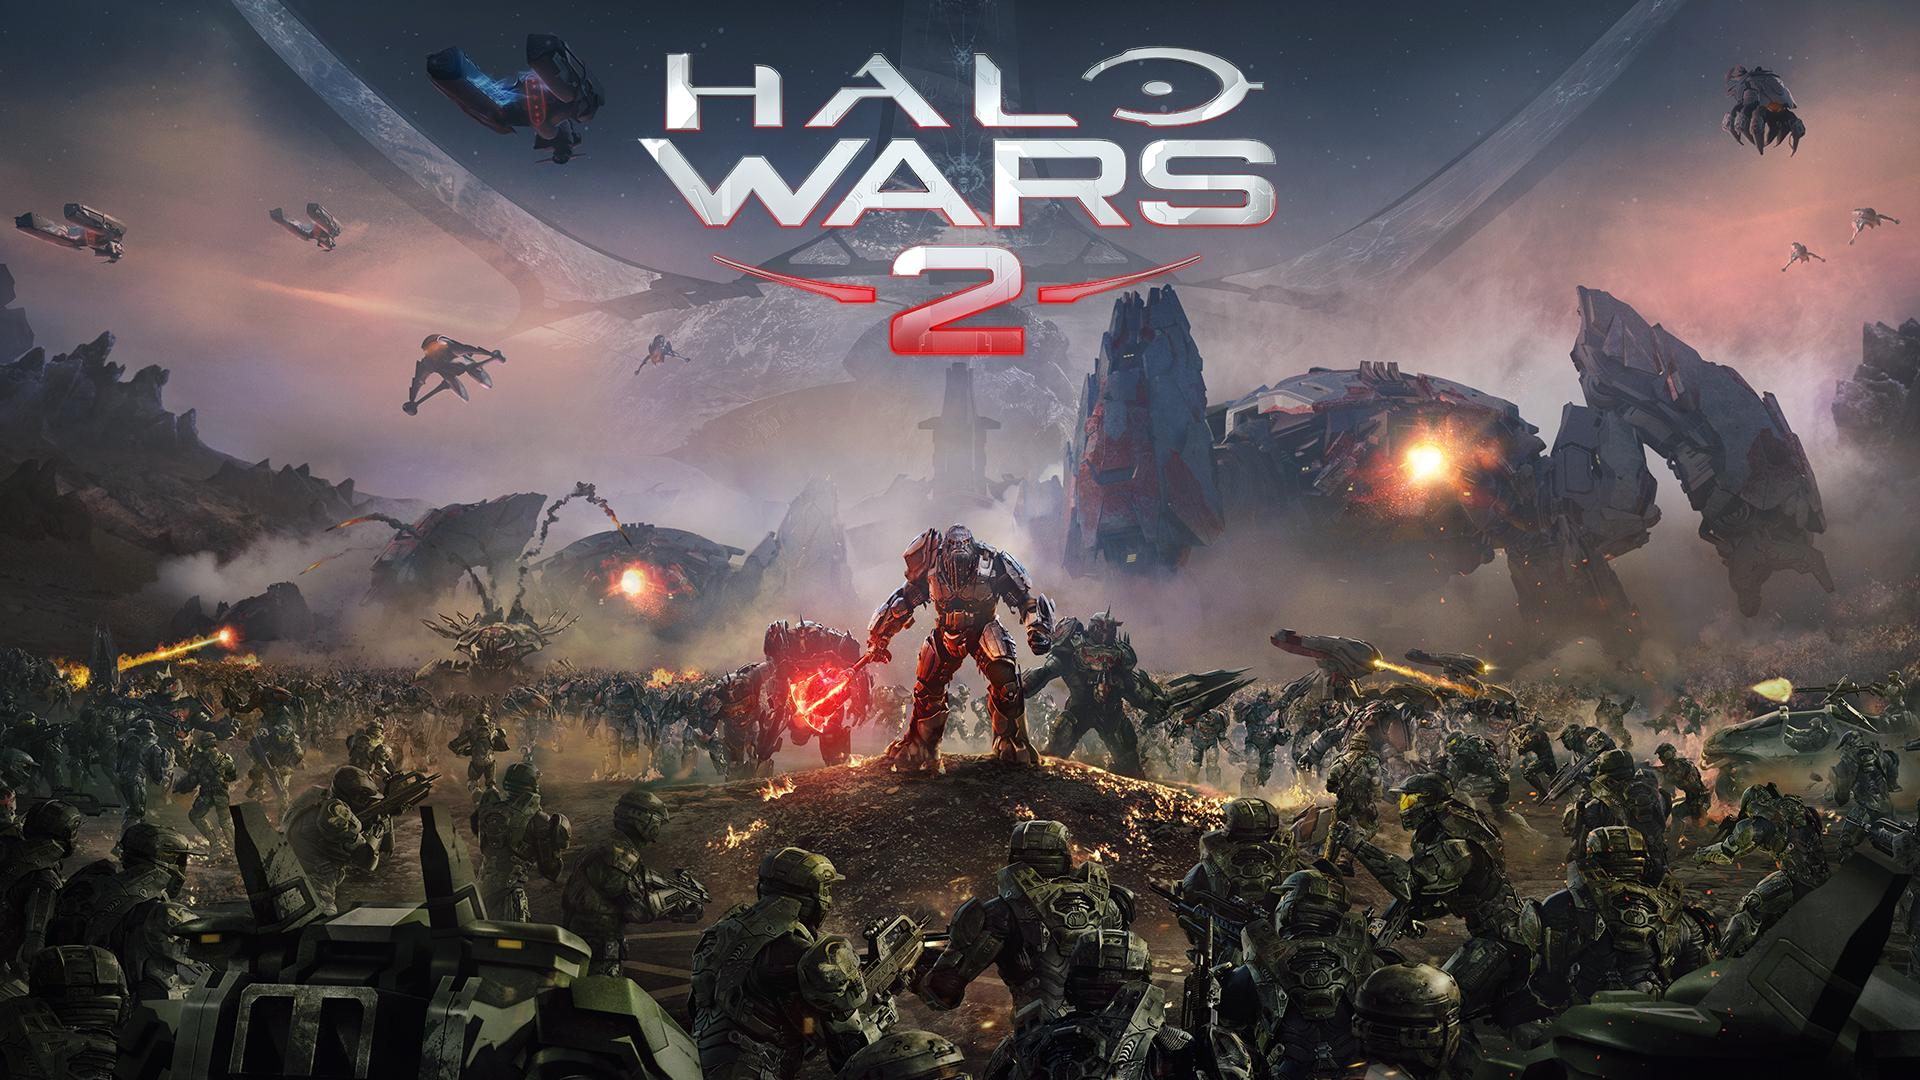 Update] Halo Wars 2 now supports HDR lighting - MSPoweruser